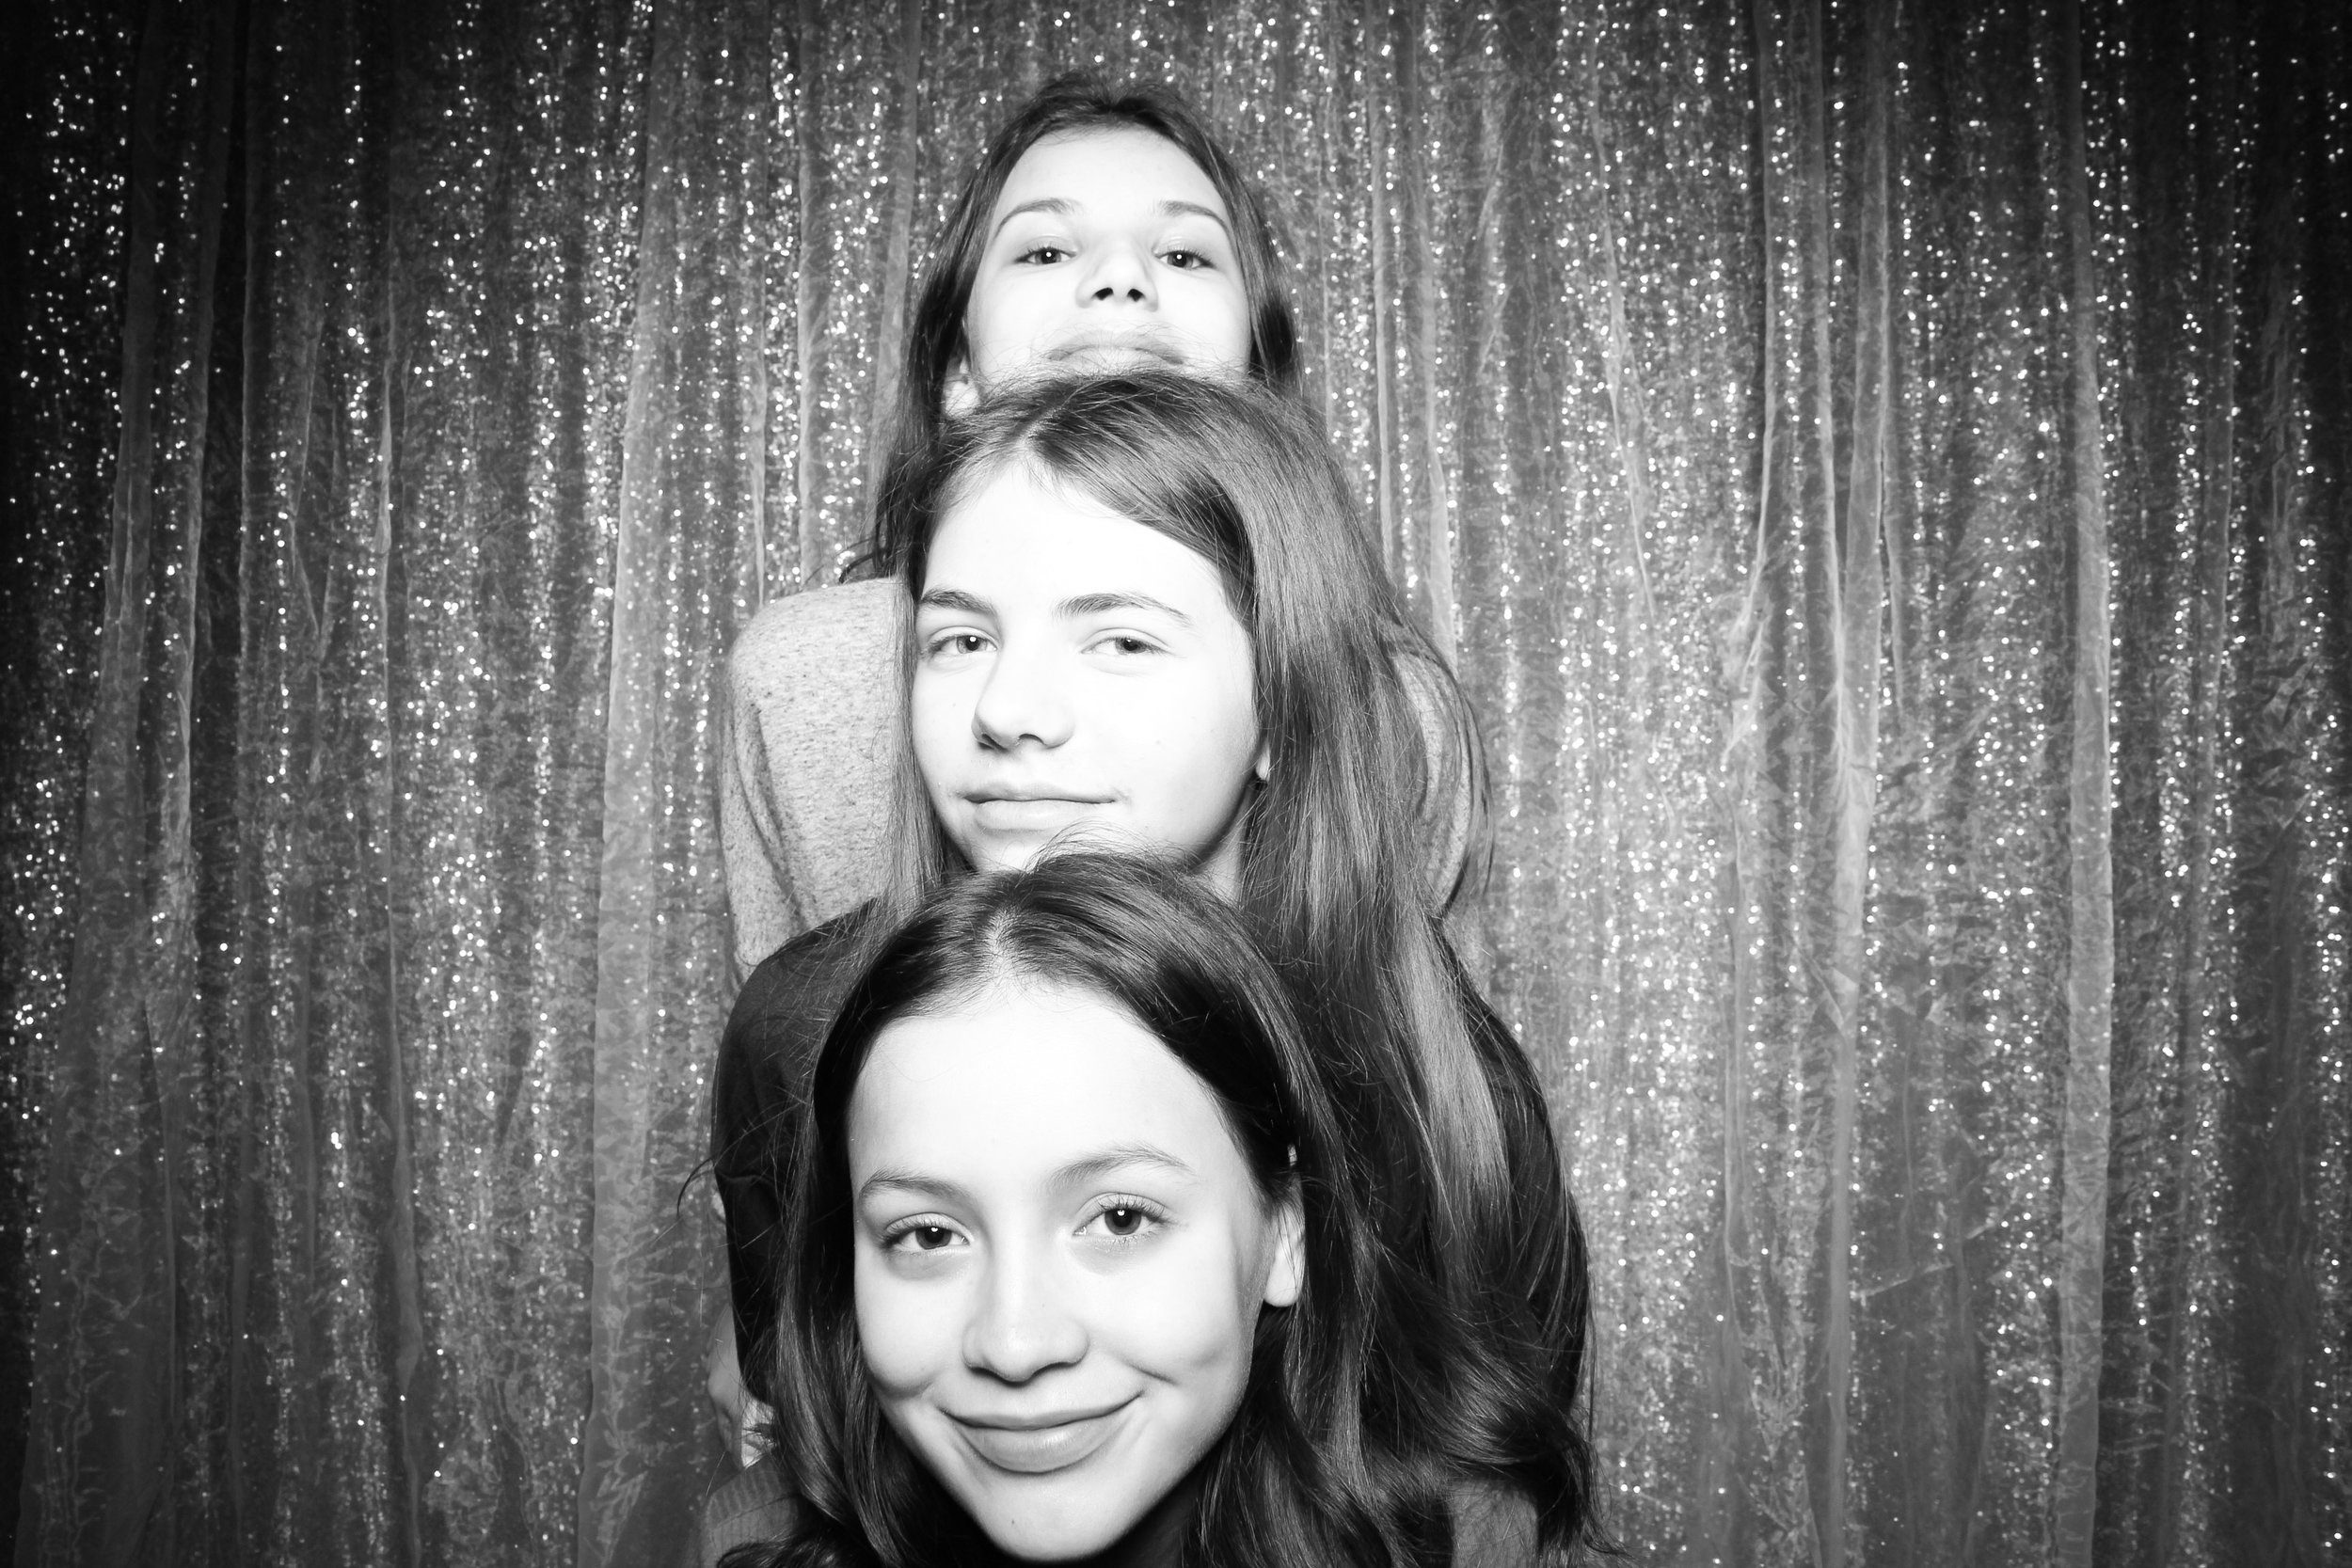 Chicago_Vintage_Wedding_Photobooth_Downers_Grove_03.jpg